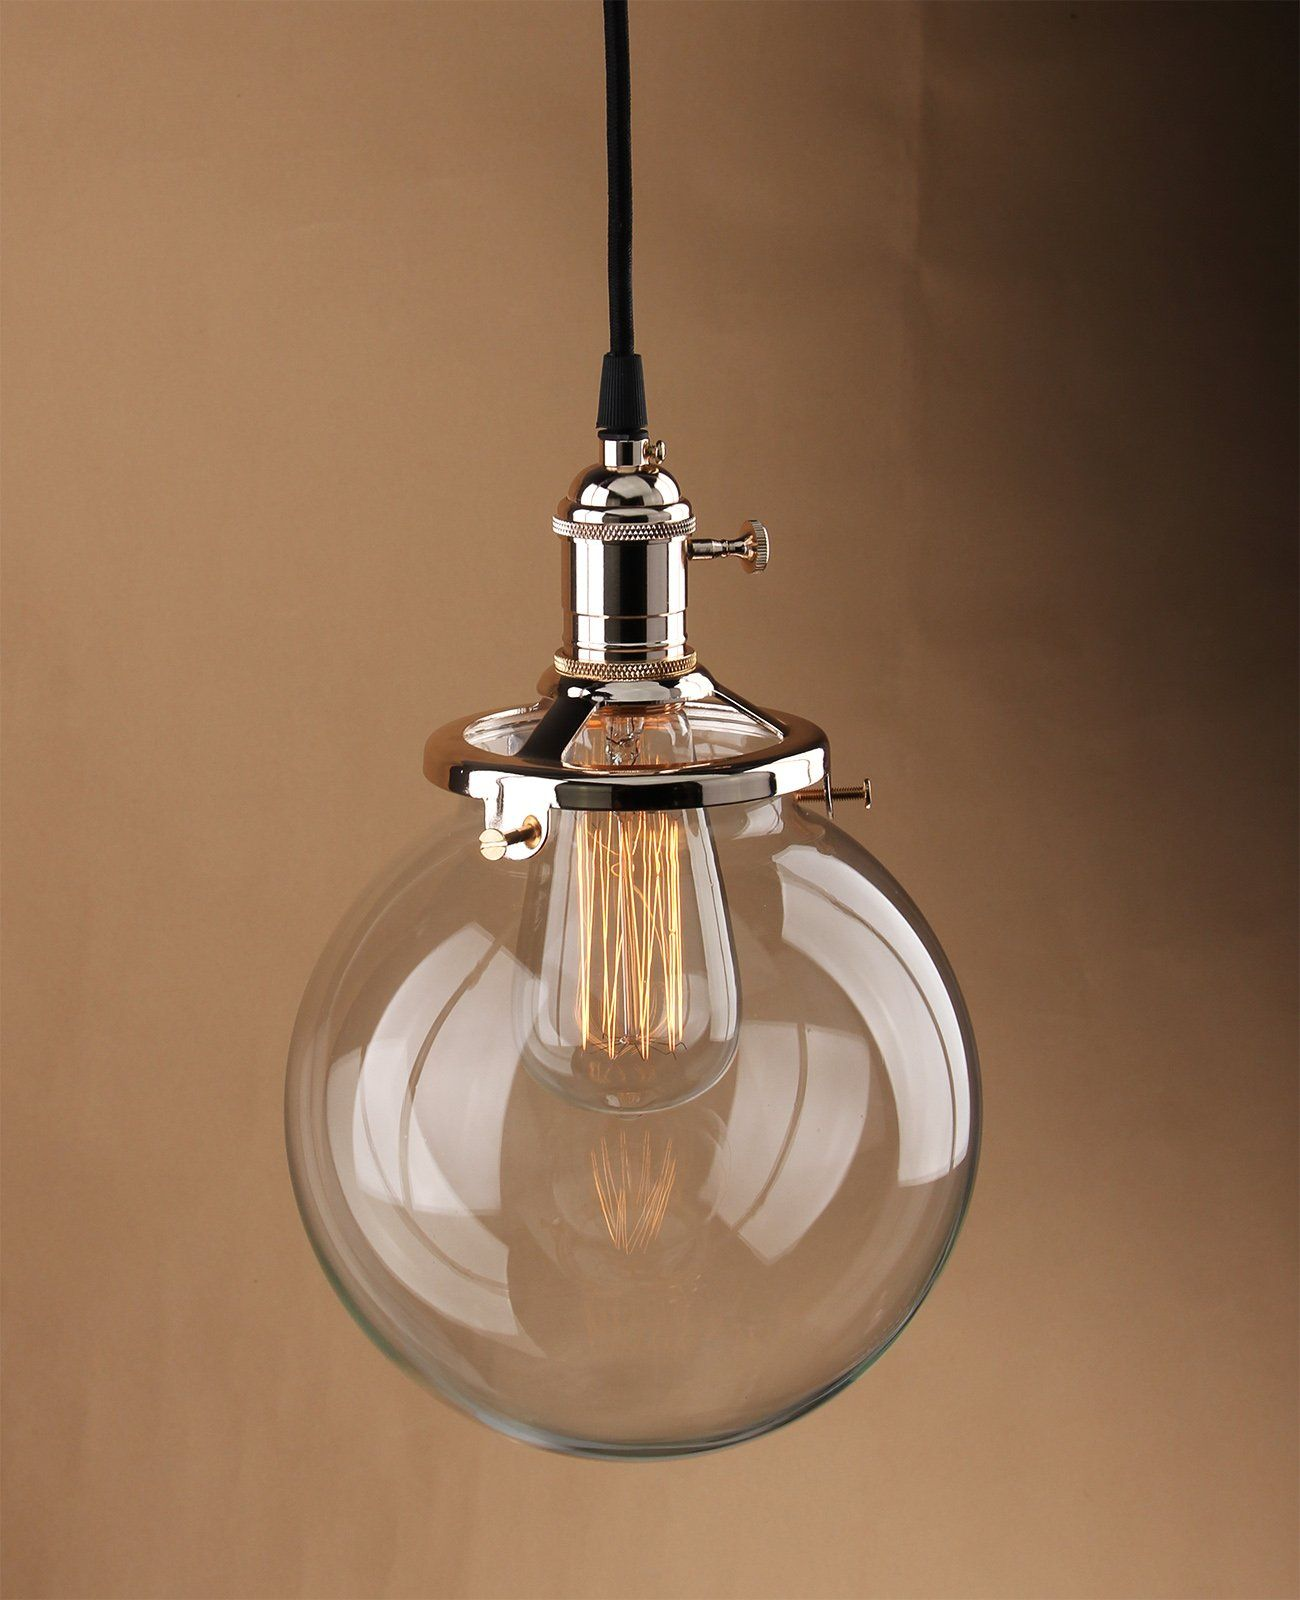 Retro Kitchen Lighting Buyeear Modern Industrial Metal Glass Loft Pendant Lamp Retro